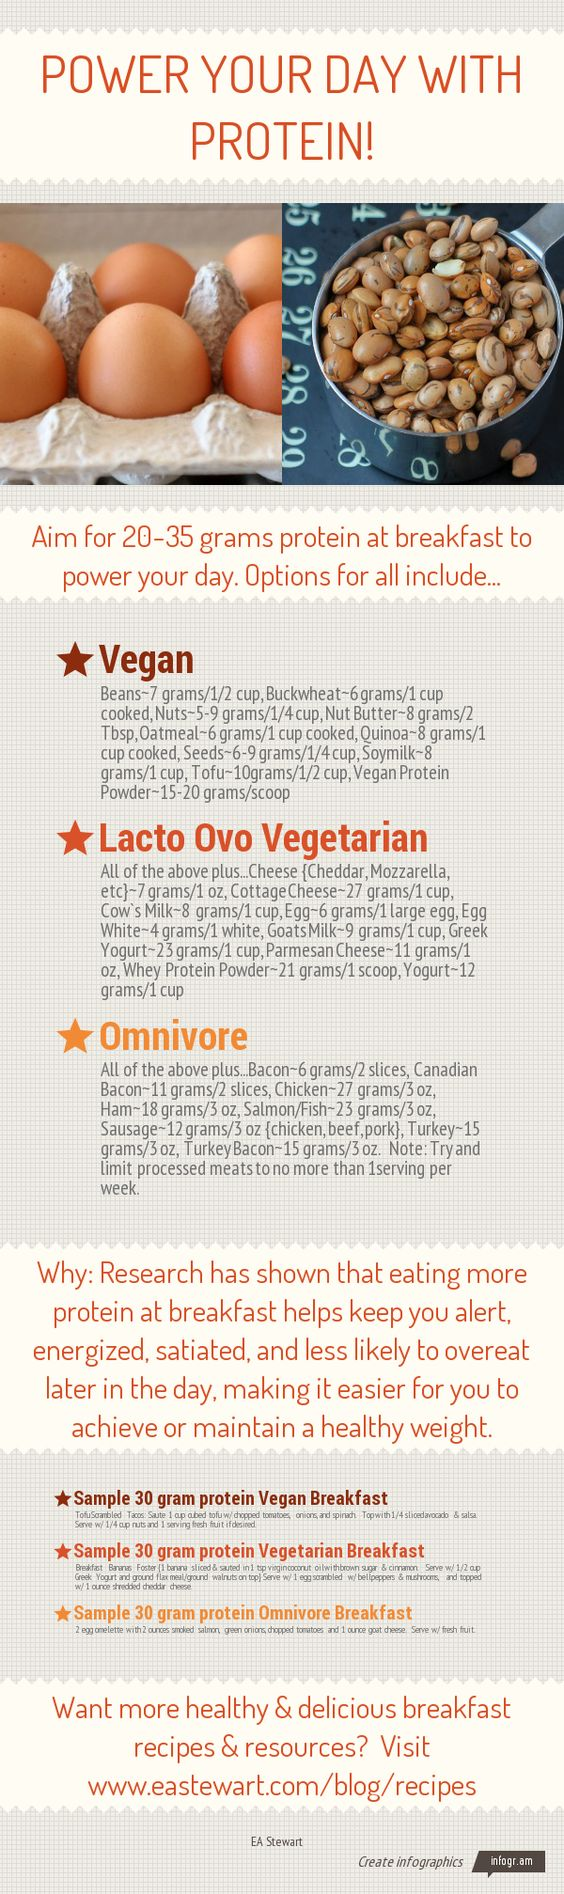 Power Your Day with Protein! High Protein Breakfast Foods for Vegans, Vegetarians, & Omnivores! #infographic